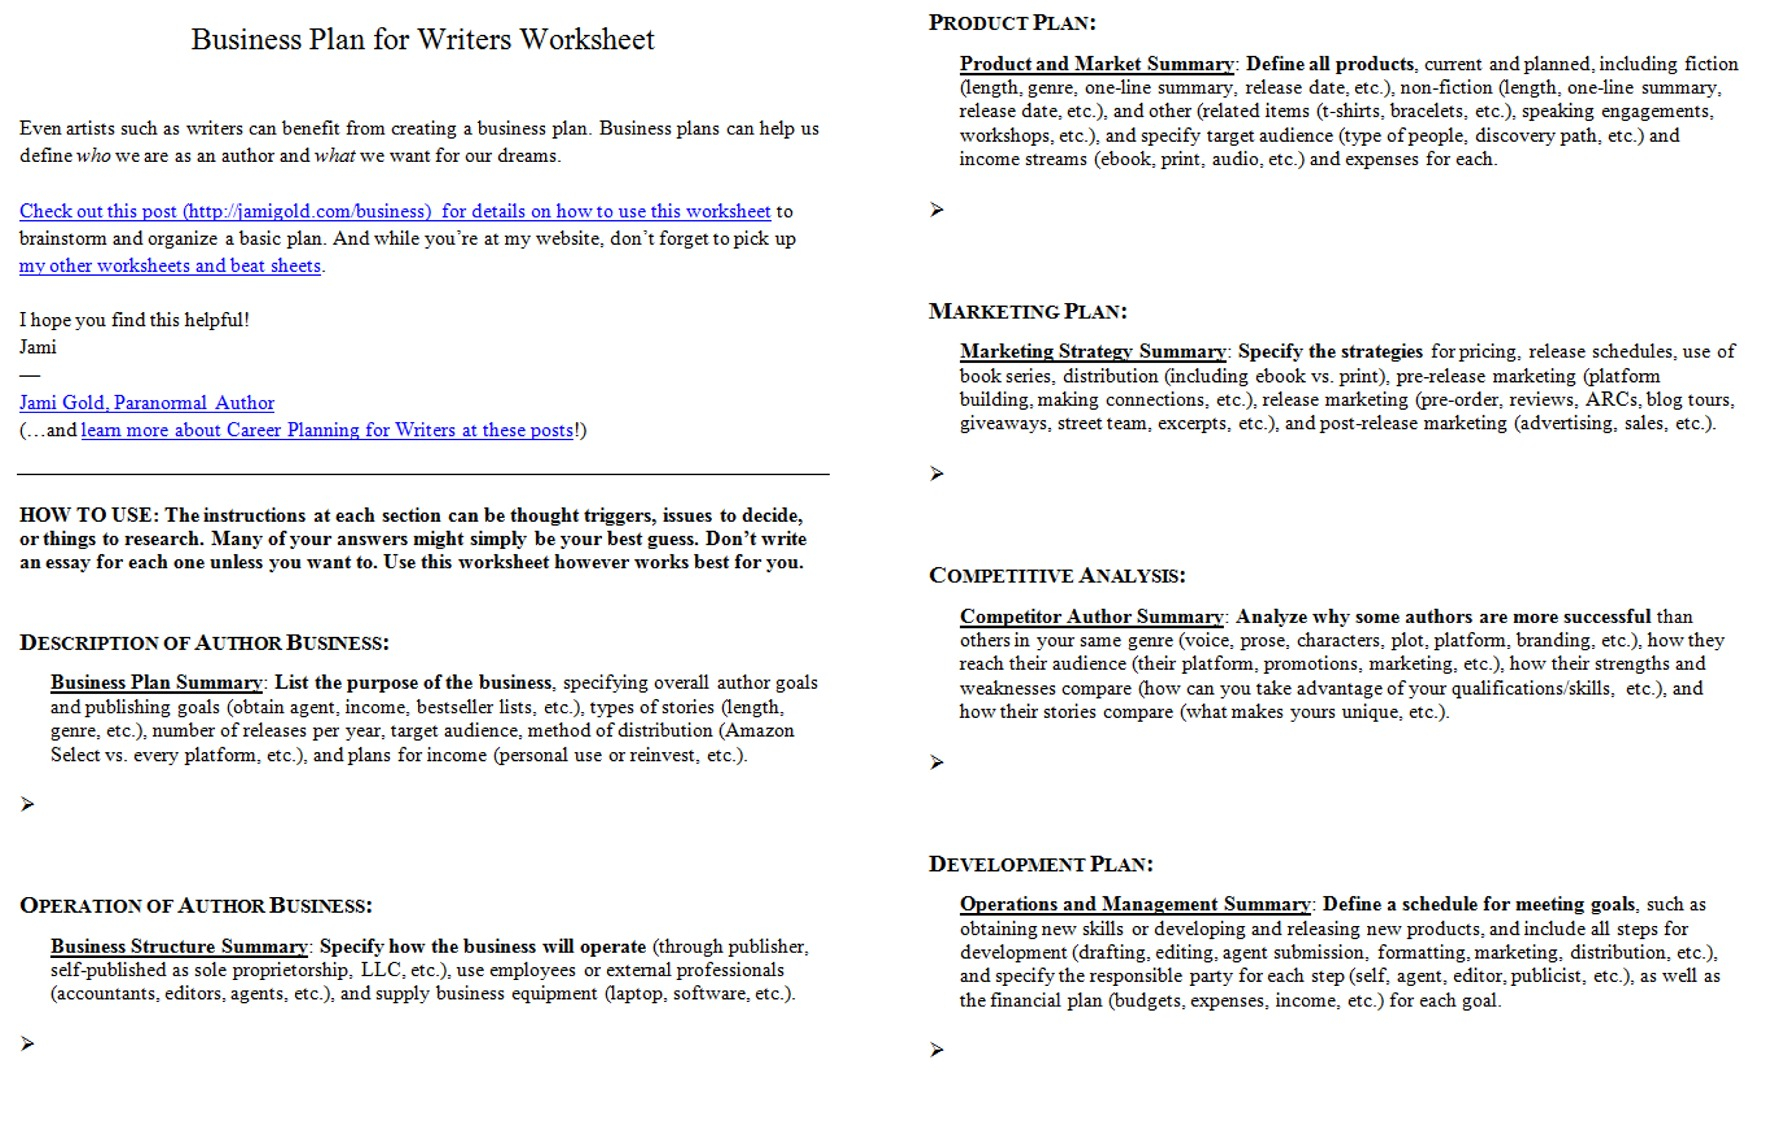 Proatmealus  Stunning Worksheets For Writers  Jami Gold Paranormal Author With Exquisite Screen Shot Of Both Pages Of The Business Plan For Writers Worksheet With Delectable Th Grade Free Worksheets Also Composite Shapes Area Worksheet In Addition D Nealian Handwriting Practice Worksheets And Textbook Scavenger Hunt Worksheet As Well As Order Of Operations Worksheets Th Grade Additionally Color By Shape Worksheet From Jamigoldcom With Proatmealus  Exquisite Worksheets For Writers  Jami Gold Paranormal Author With Delectable Screen Shot Of Both Pages Of The Business Plan For Writers Worksheet And Stunning Th Grade Free Worksheets Also Composite Shapes Area Worksheet In Addition D Nealian Handwriting Practice Worksheets From Jamigoldcom